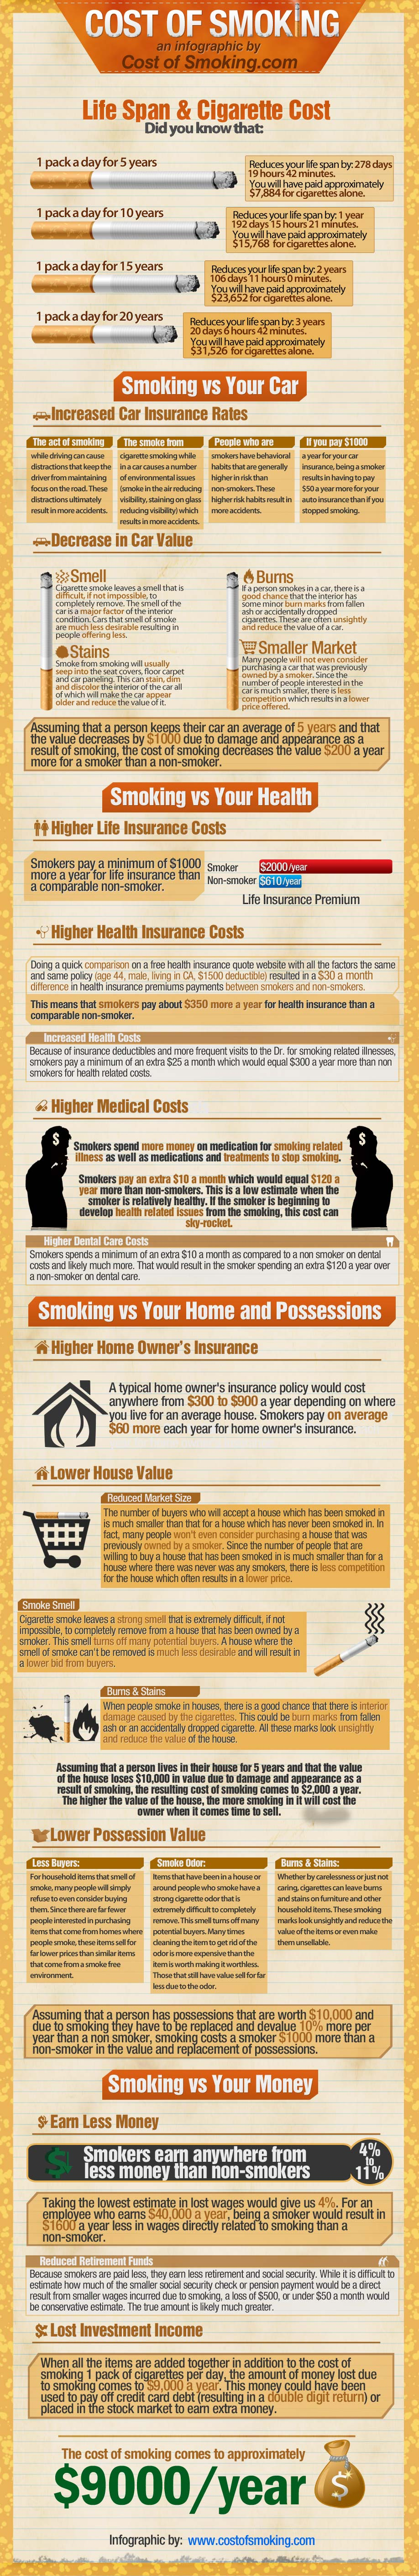 How Much Does Smoking Cost? Infographic